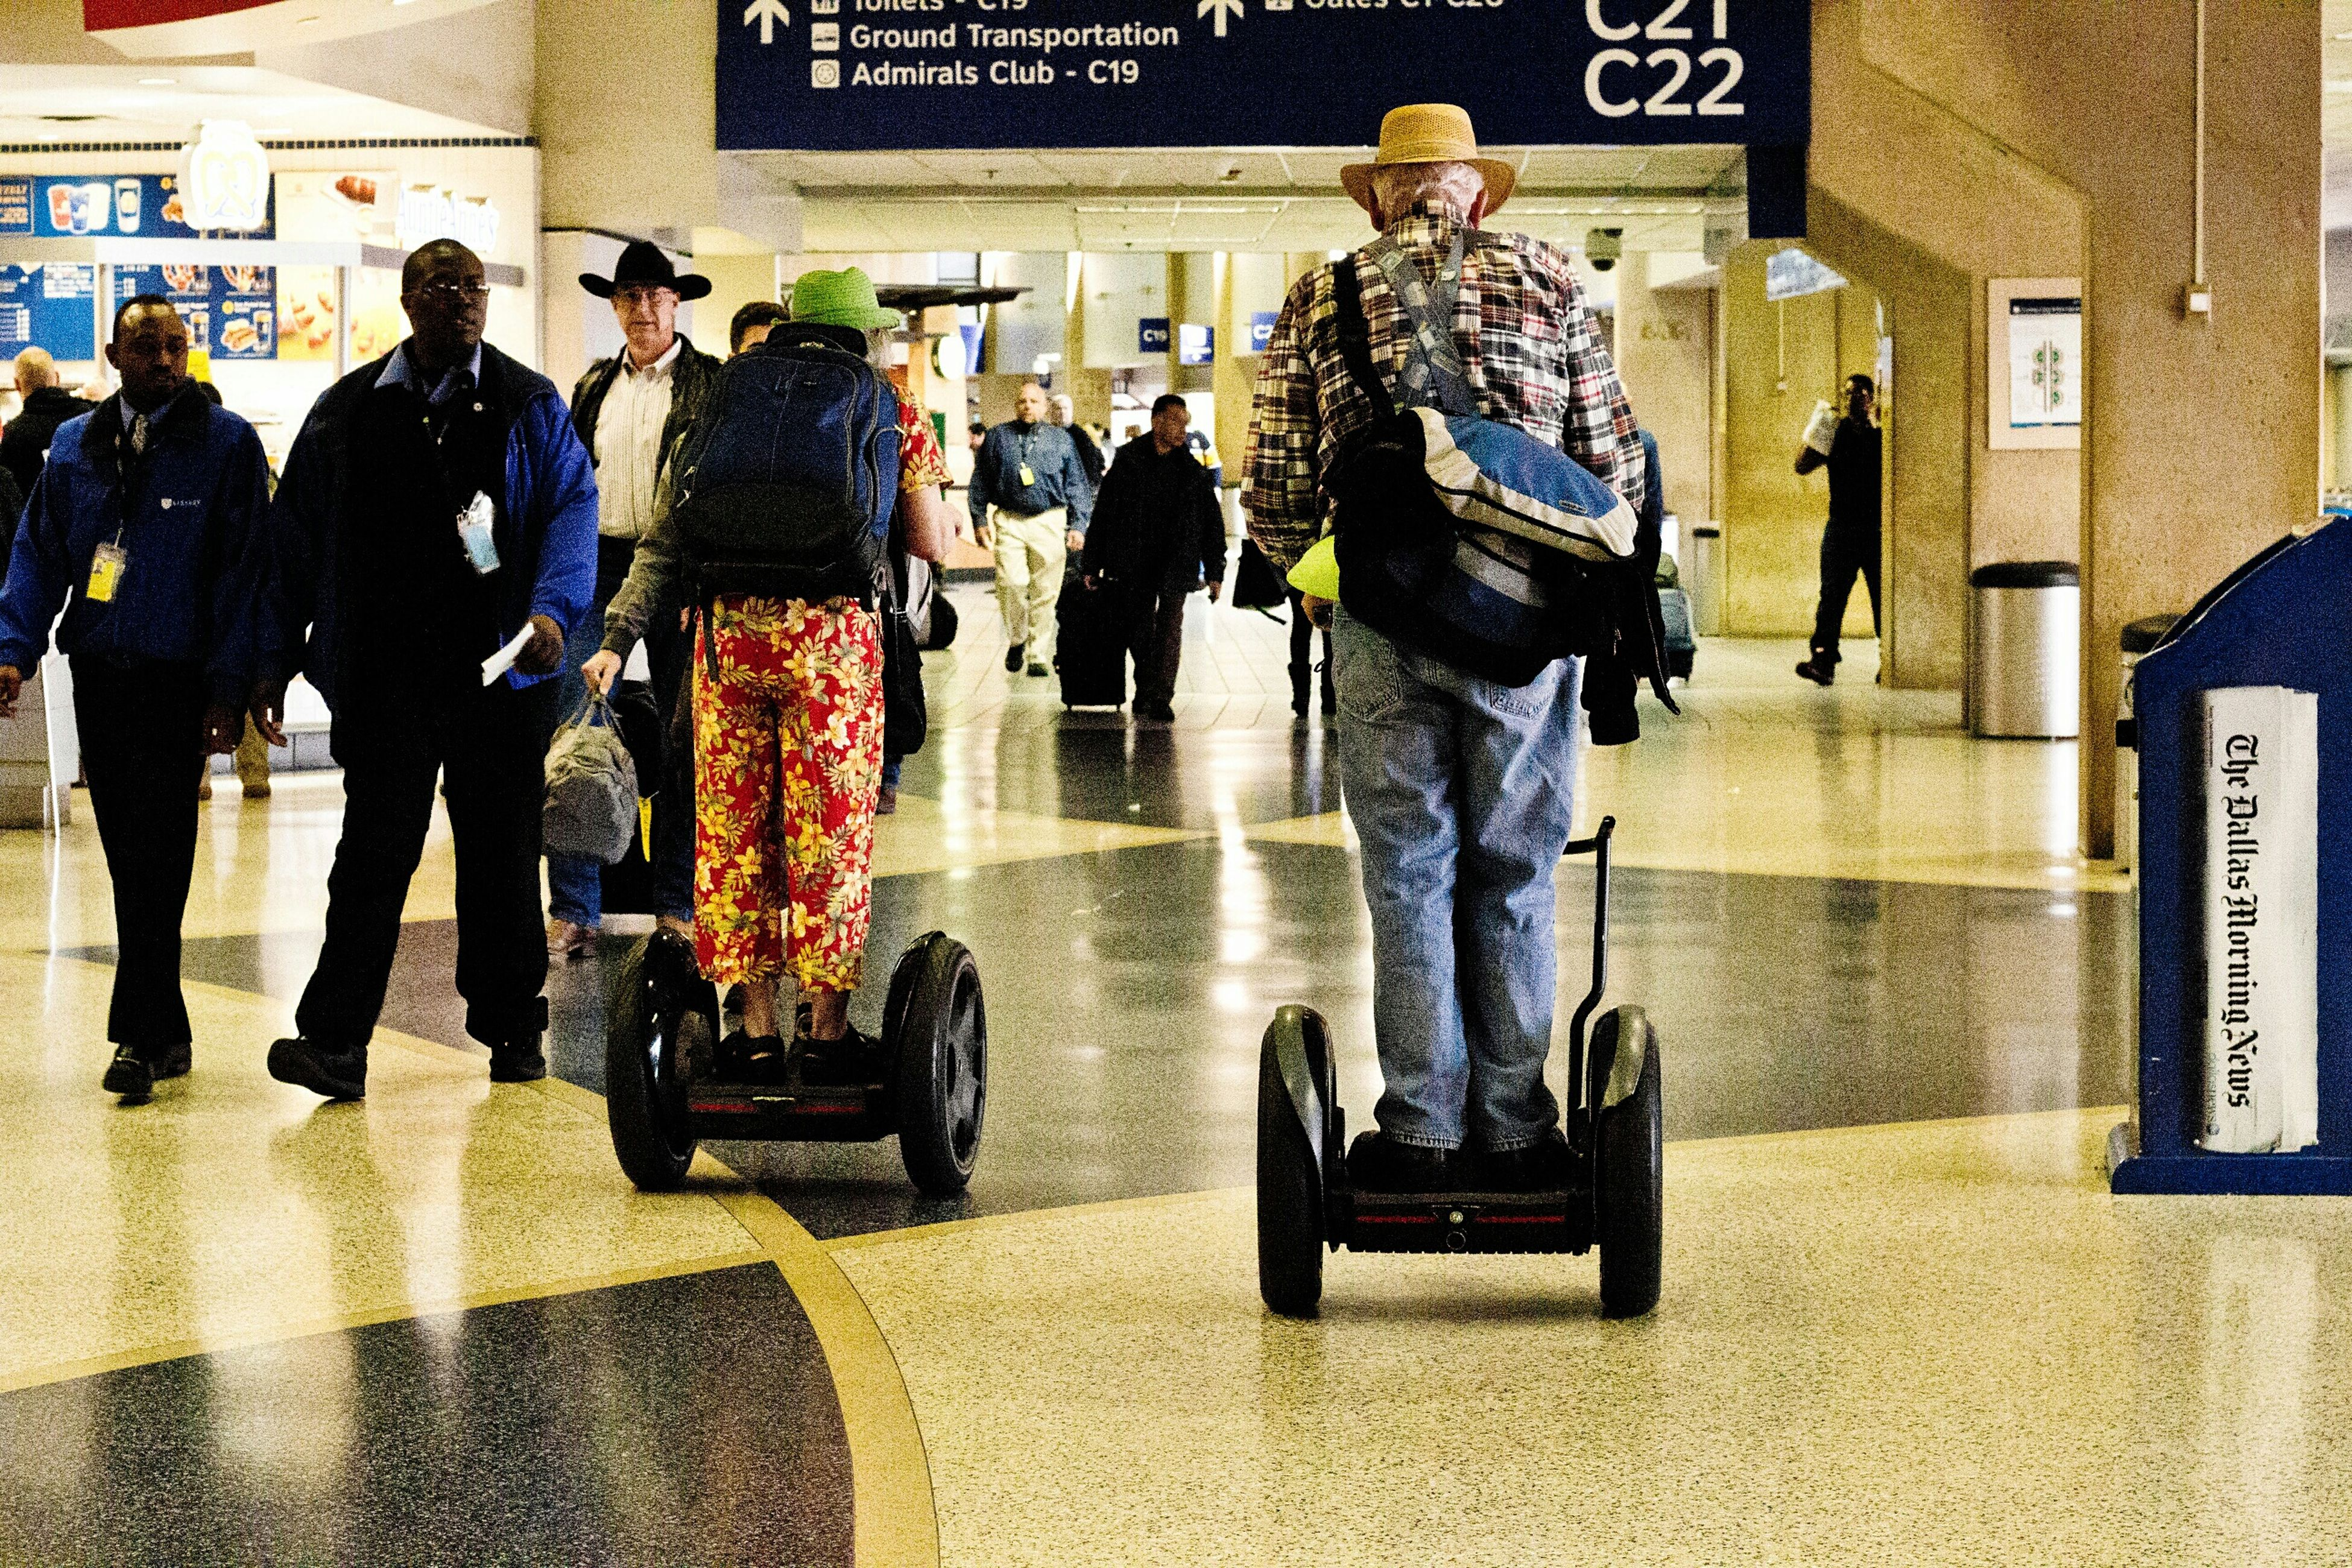 RePicture Ageing Elders On The Move Heads Up Retro Active Airport Navigation Dfw Airport